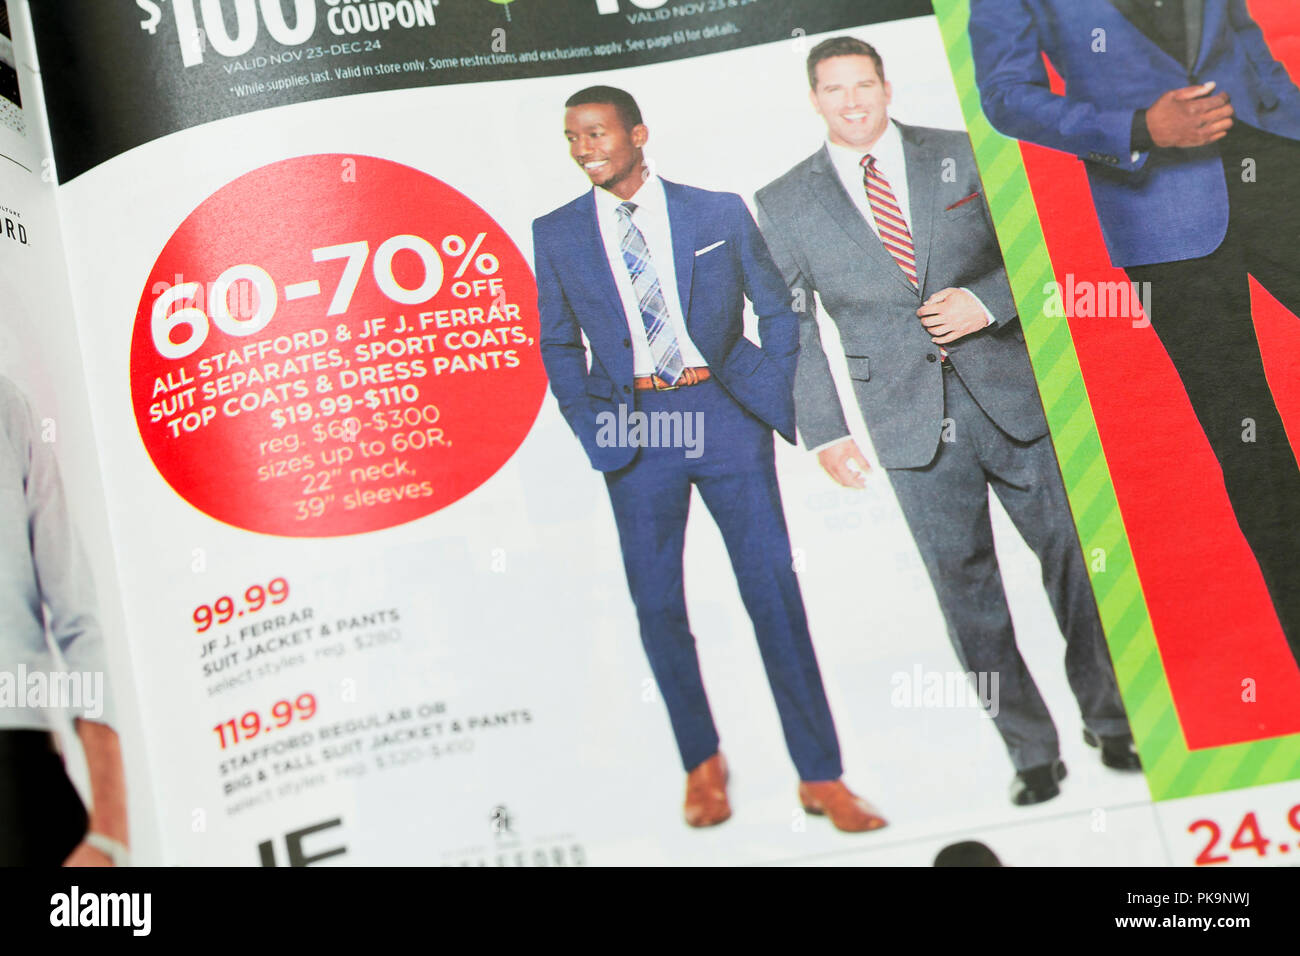 Men's suits advertisement in weekly mailer ad - USA - Stock Image